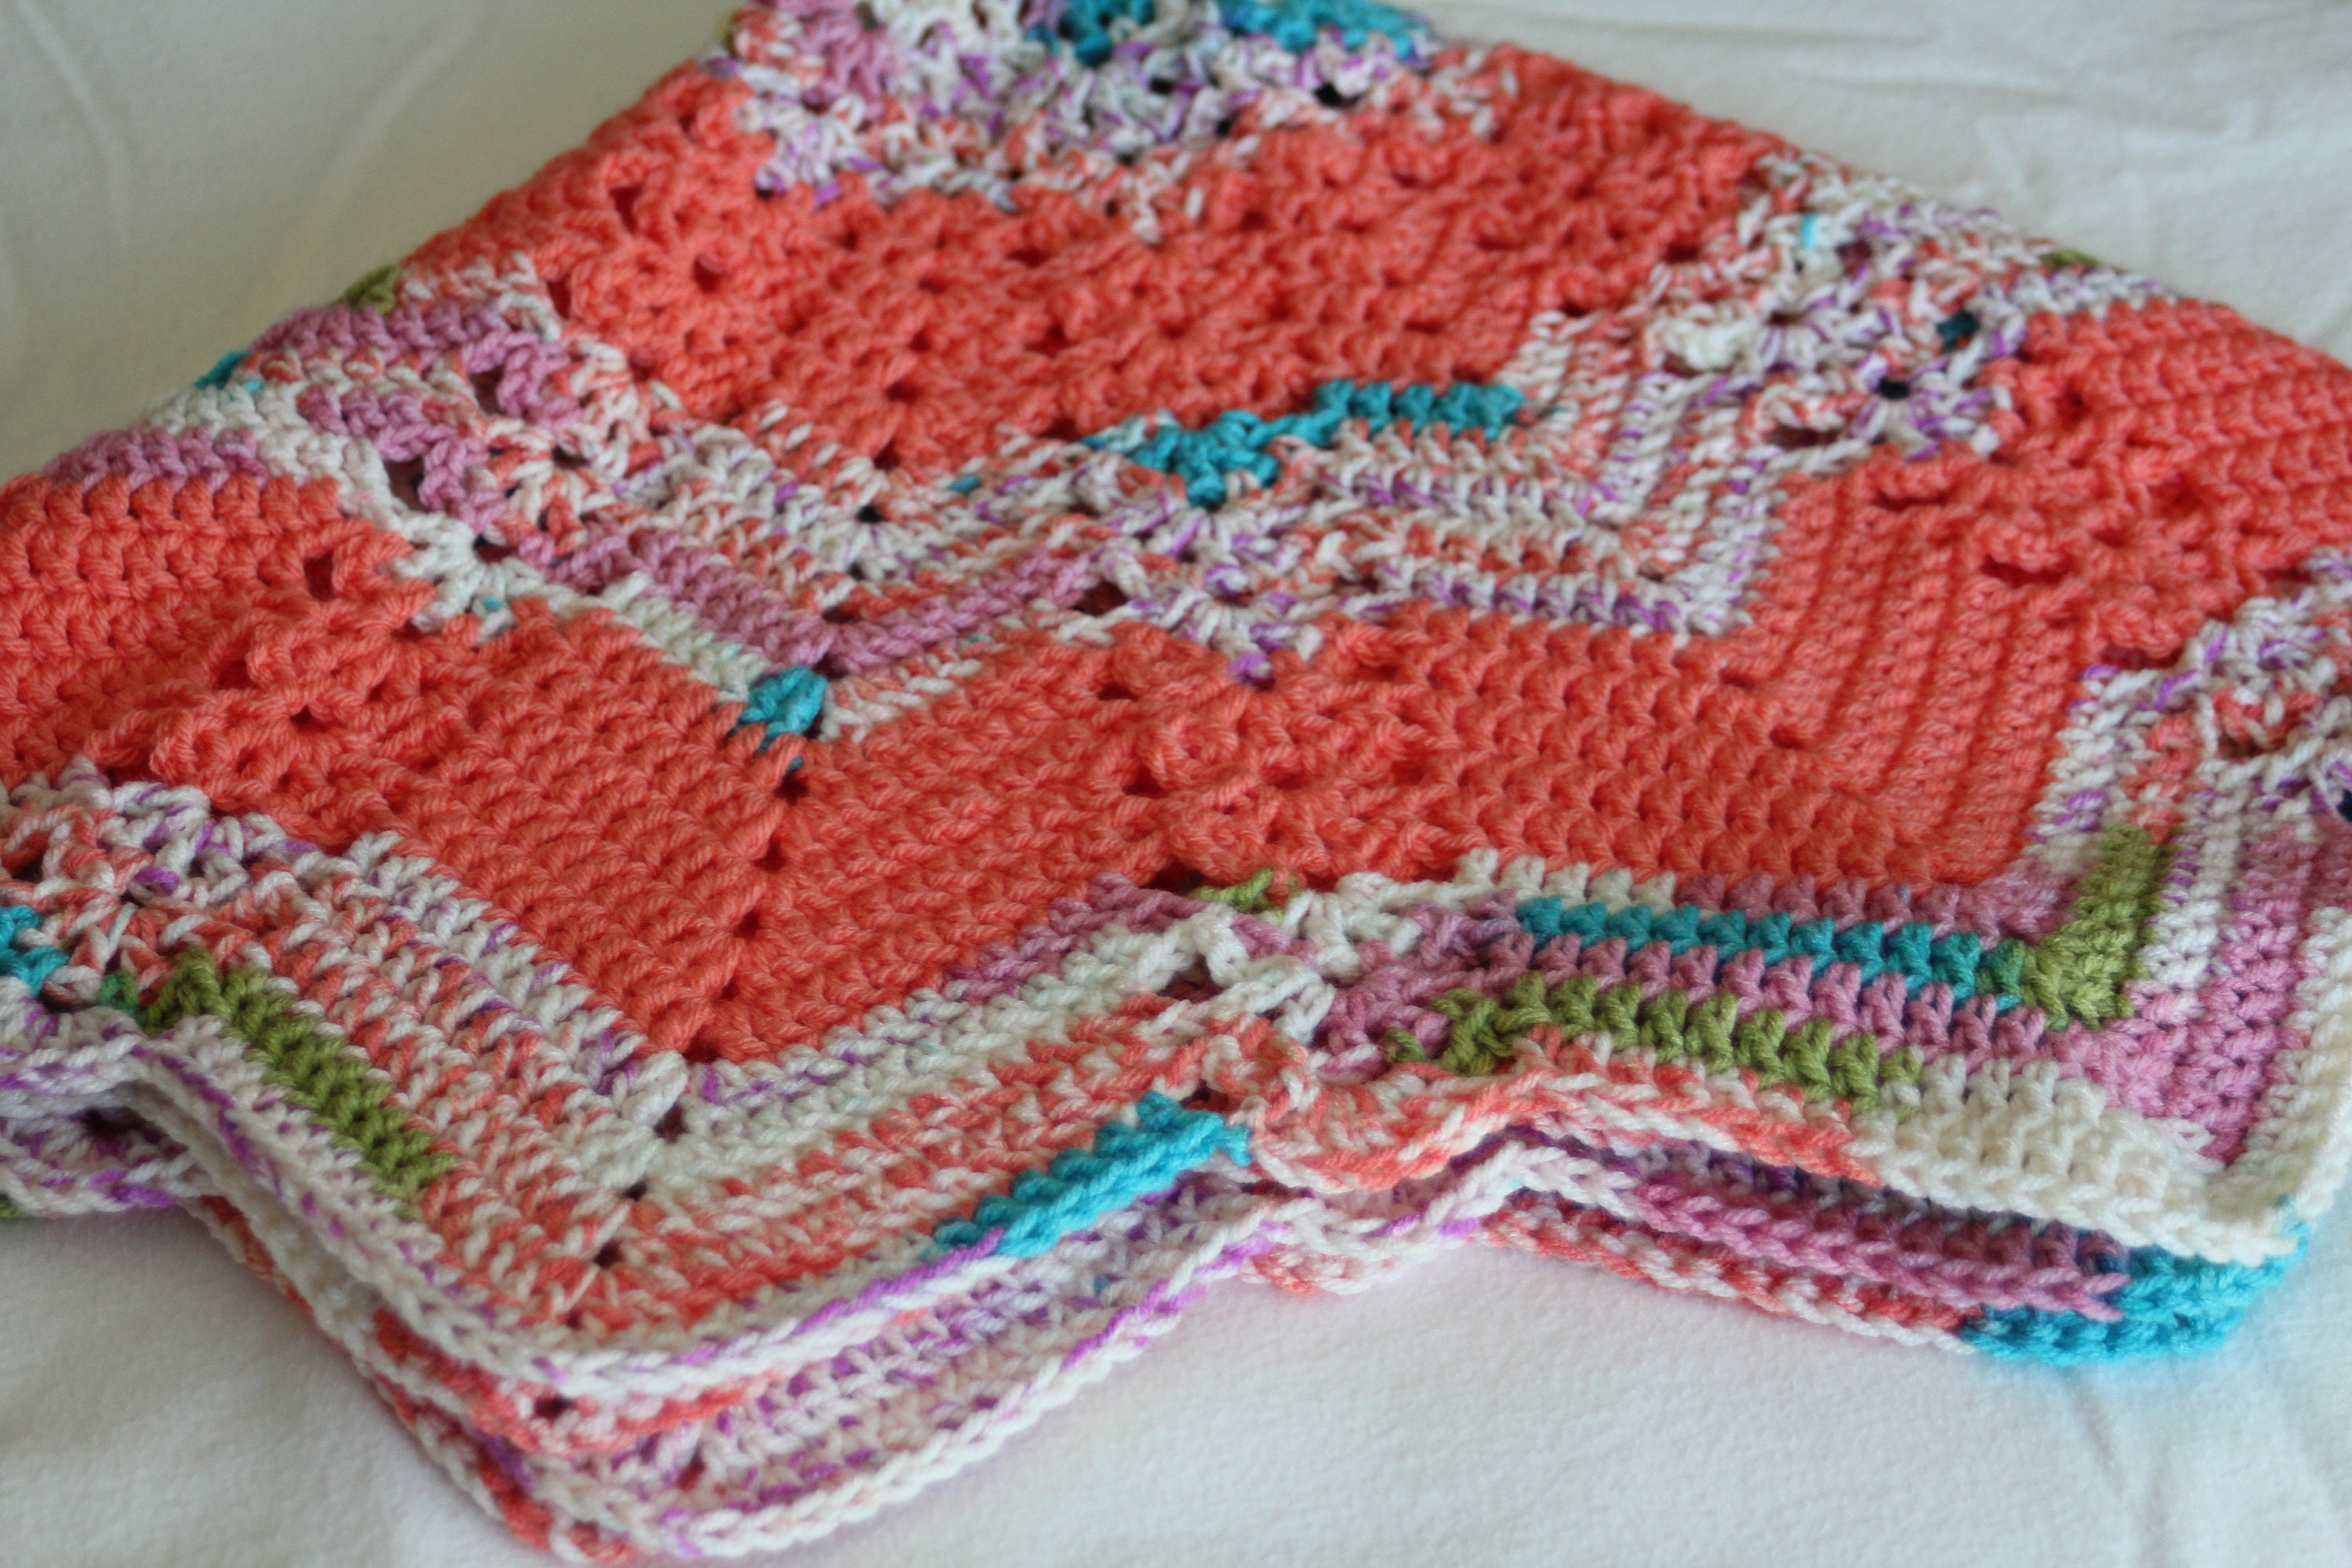 Baby Blanket 38 Crochet Round Ripple With Lace Column Etsy